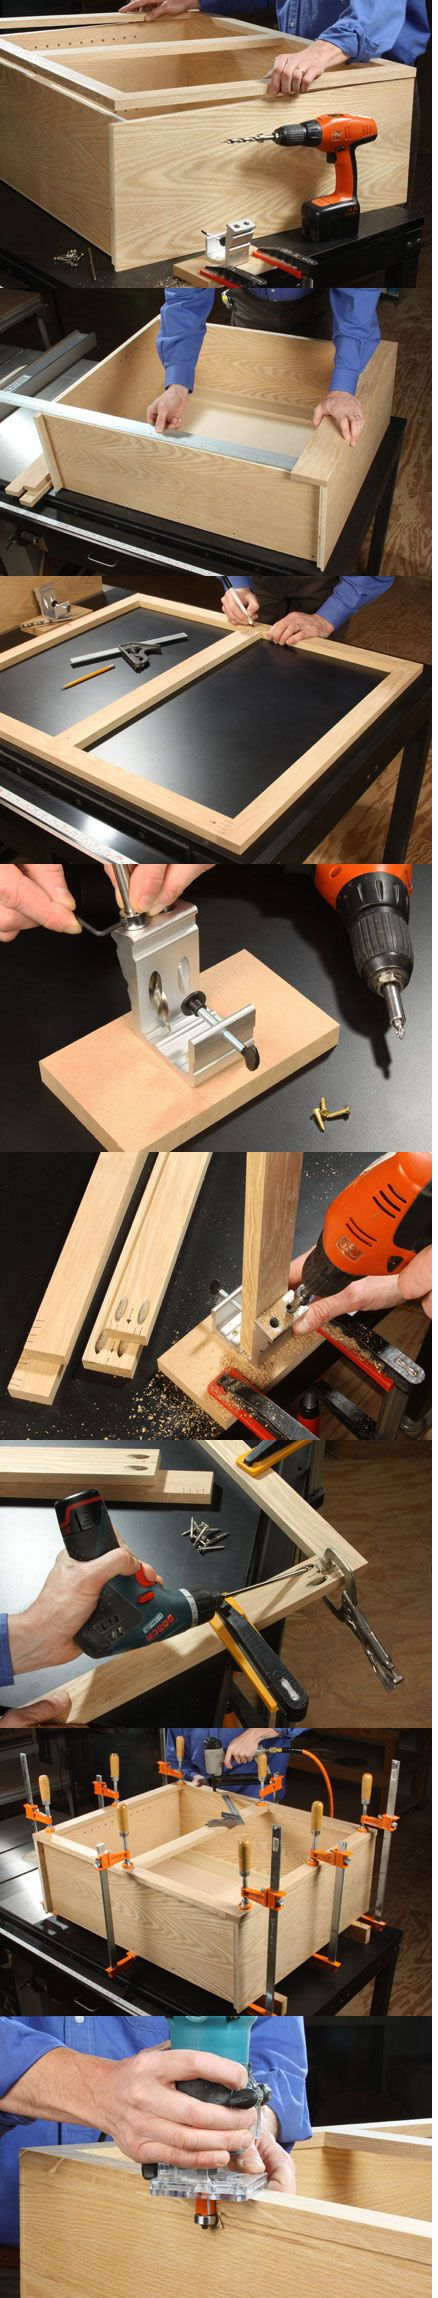 Trim out a cabinet the classic way using pocket-screw joints. Face frames provide attachment points for door hinge and latch hardware, while hiding the front edges of the cabinet box. They can also help correct minor plywood bowing and give you a means of fitting one cabinet against its neighbor. - Step by Step Guide from Woodworker's Journal with images #cabinet #diy #faceframe #kitchen http://www.woodworkersjournal.com/fast-easy-face-frames-with-pocket-screws/